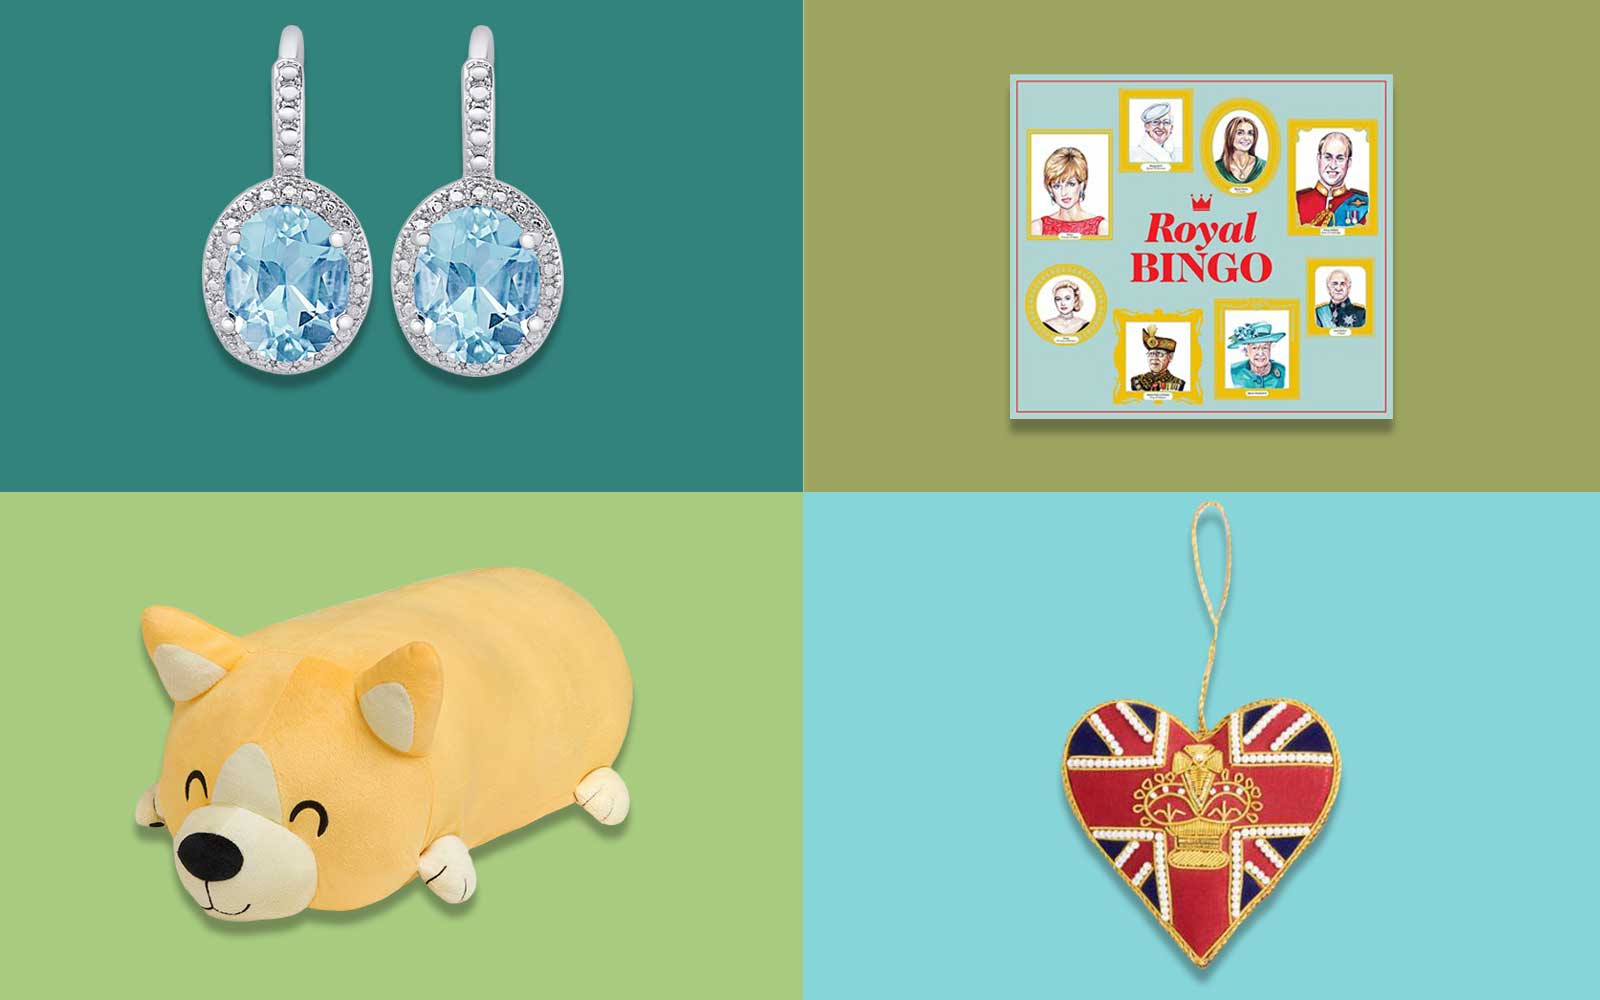 19 Gifts Any Fan of the Royal Family Will Love